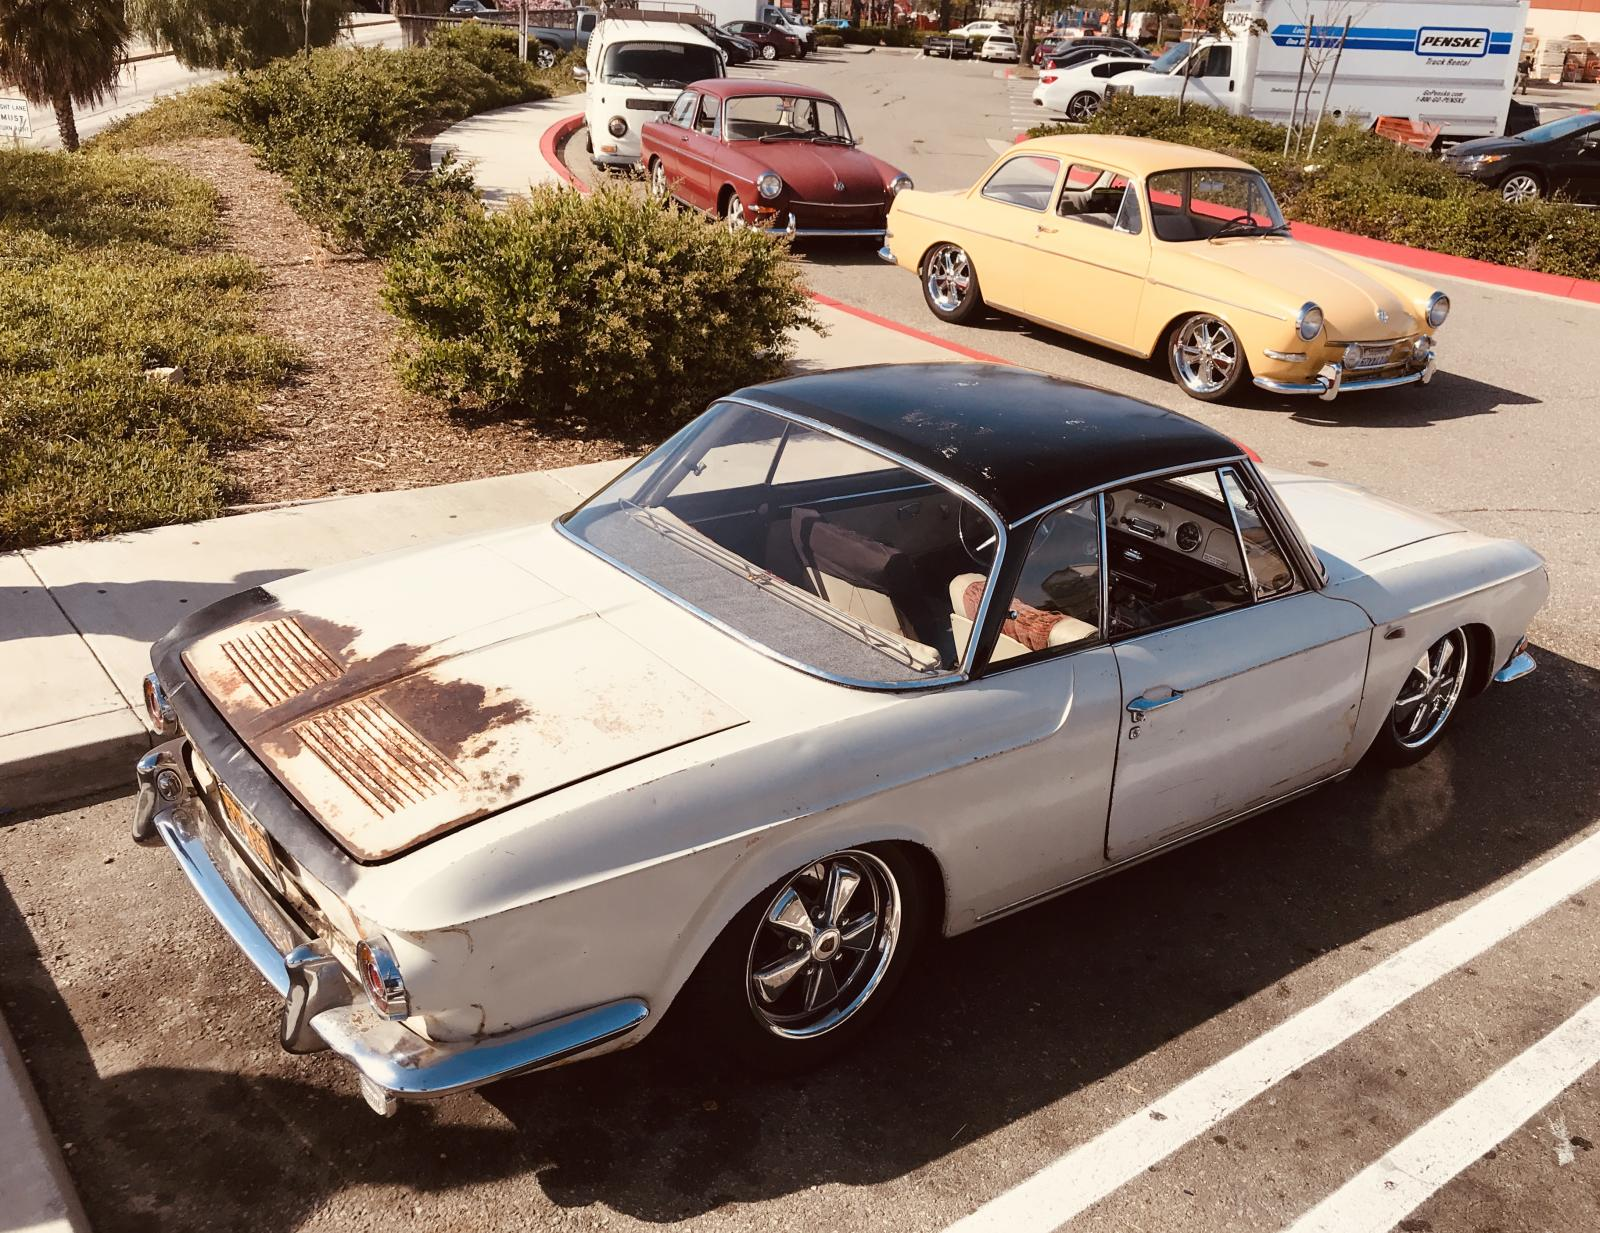 H2O Negative VW Squadron April 2019 Meet In N Out Burger Signal Hill Type 3 34 Ghia Cal Look Slammed Narrowed Fuchs Earlies Original Paint